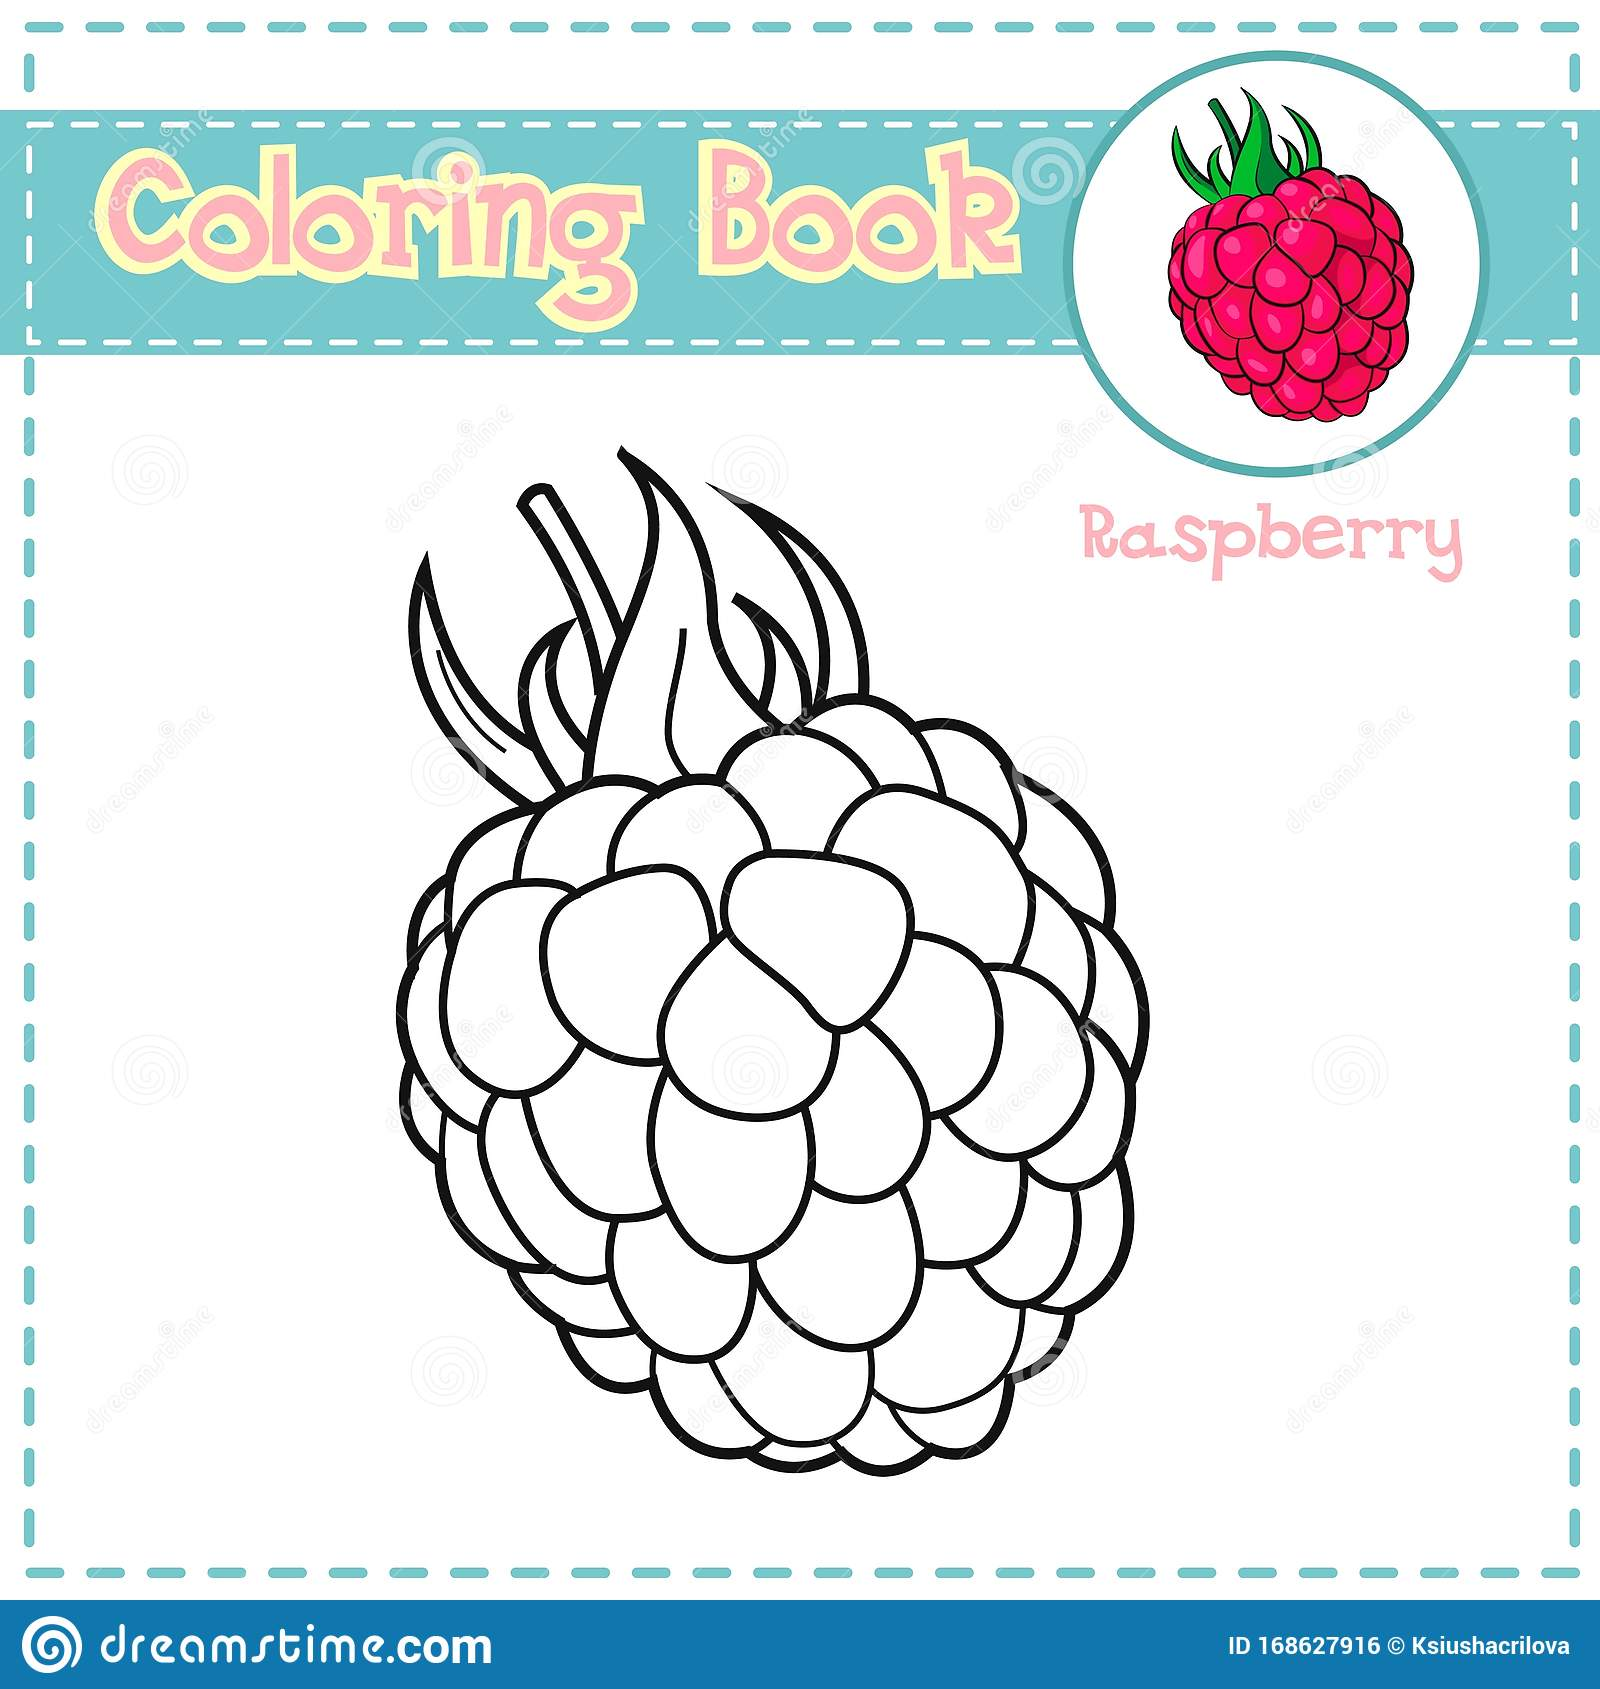 Coloring Page Of Berries For Preschool Kids Activity